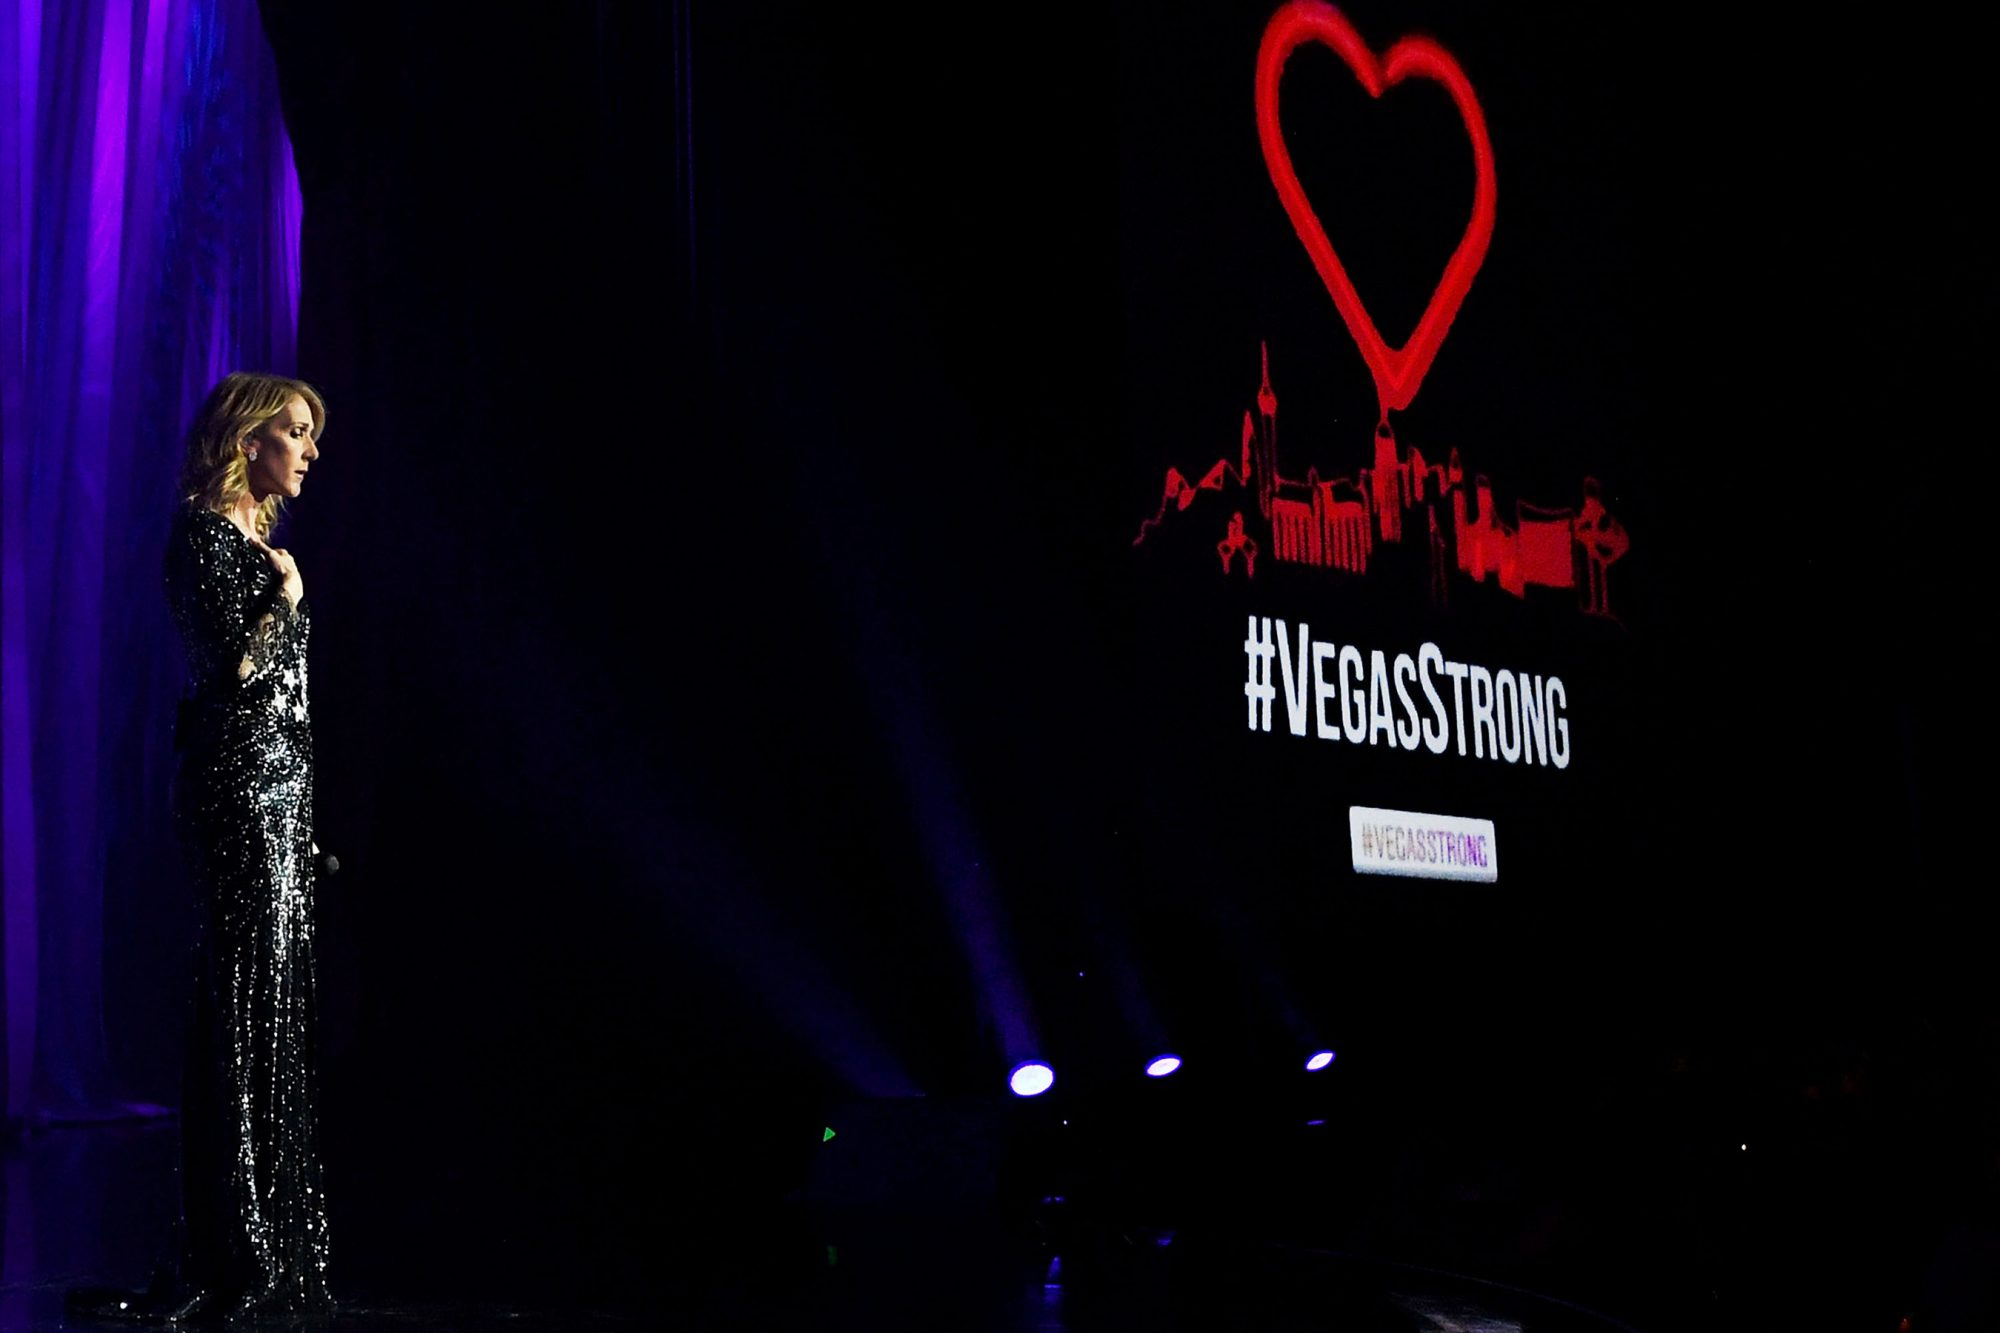 Celine Dion Pledges Proceeds From Tonight's Show At Caesars Palace To The Victims And Families Of Las Vegas Tragedy